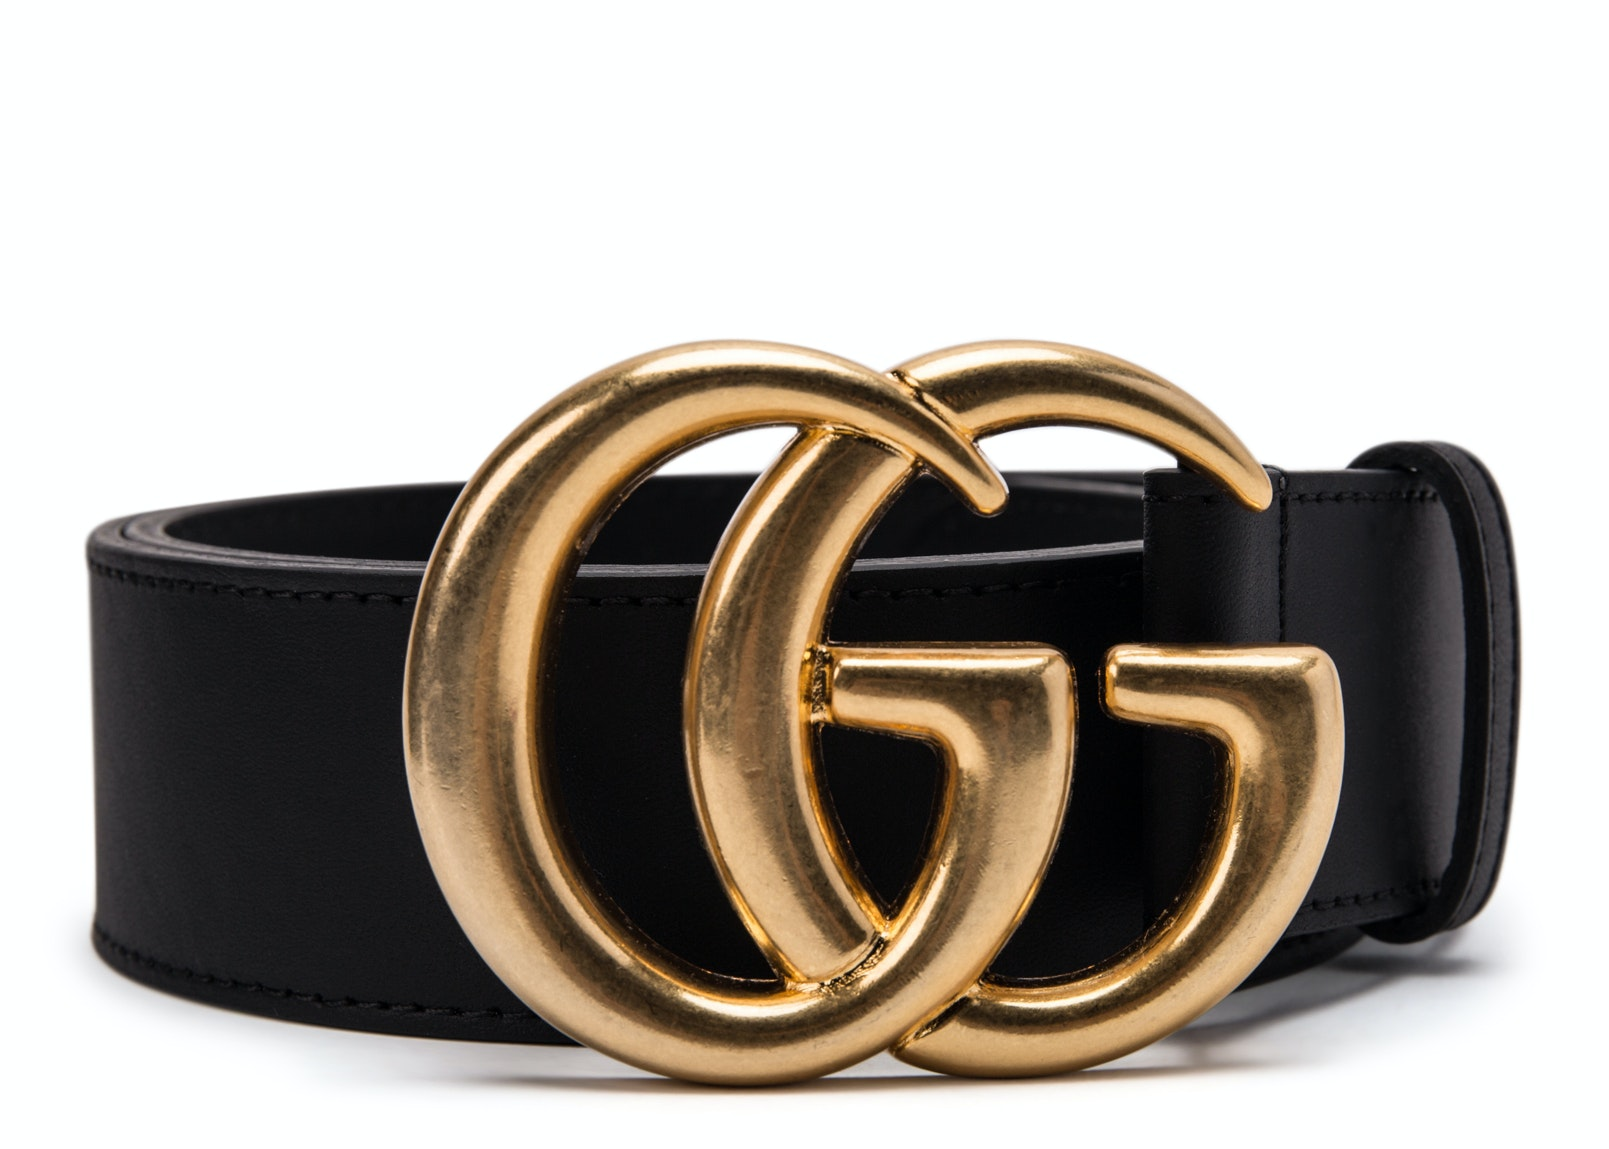 Gucci Double G Gold Buckle Leather Belt 1.5 Width Black